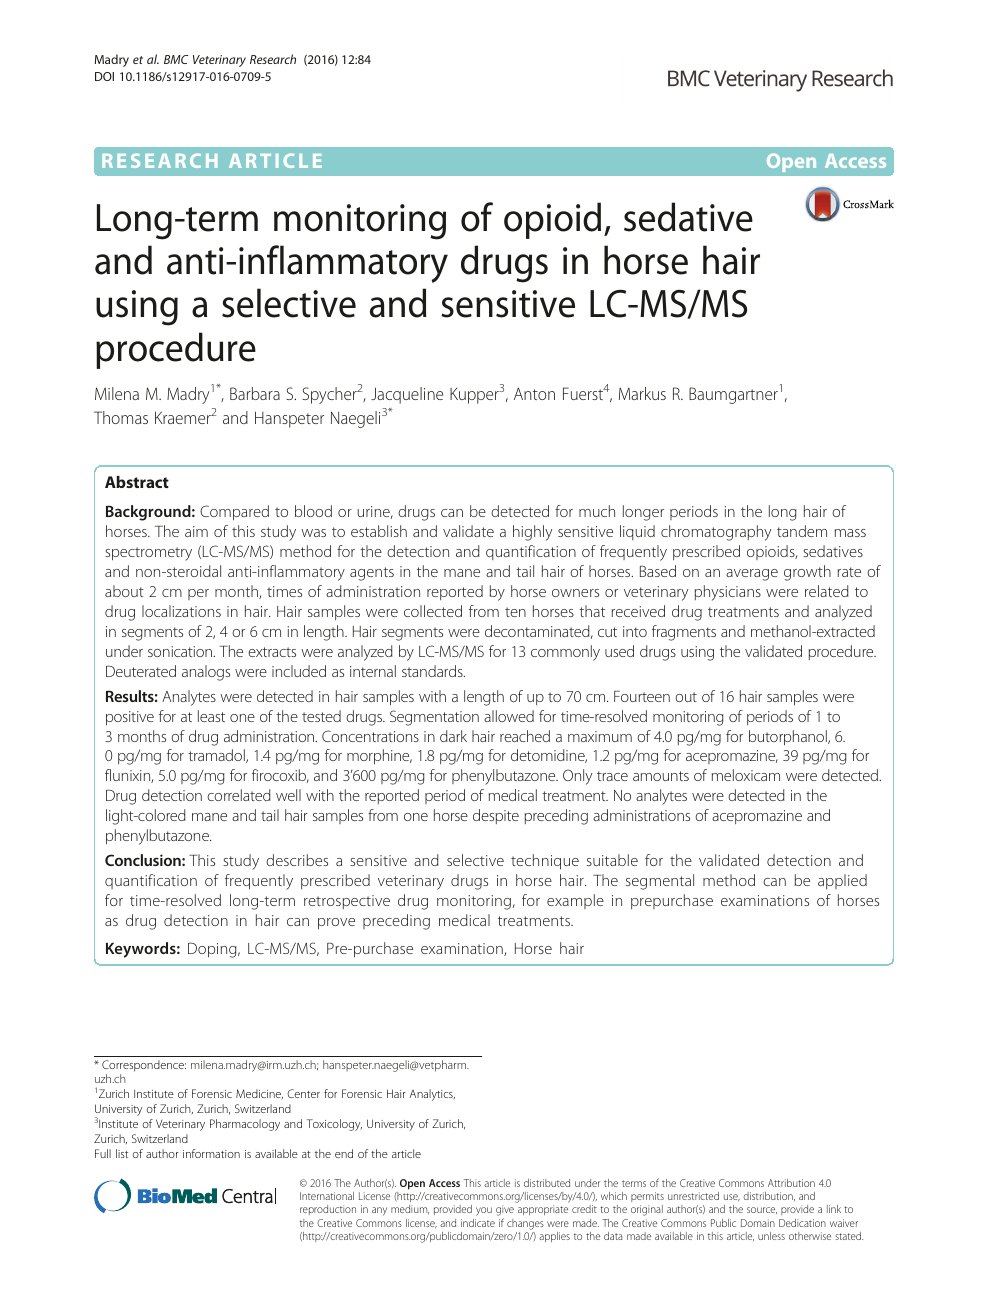 Long-term monitoring of opioid, sedative and anti